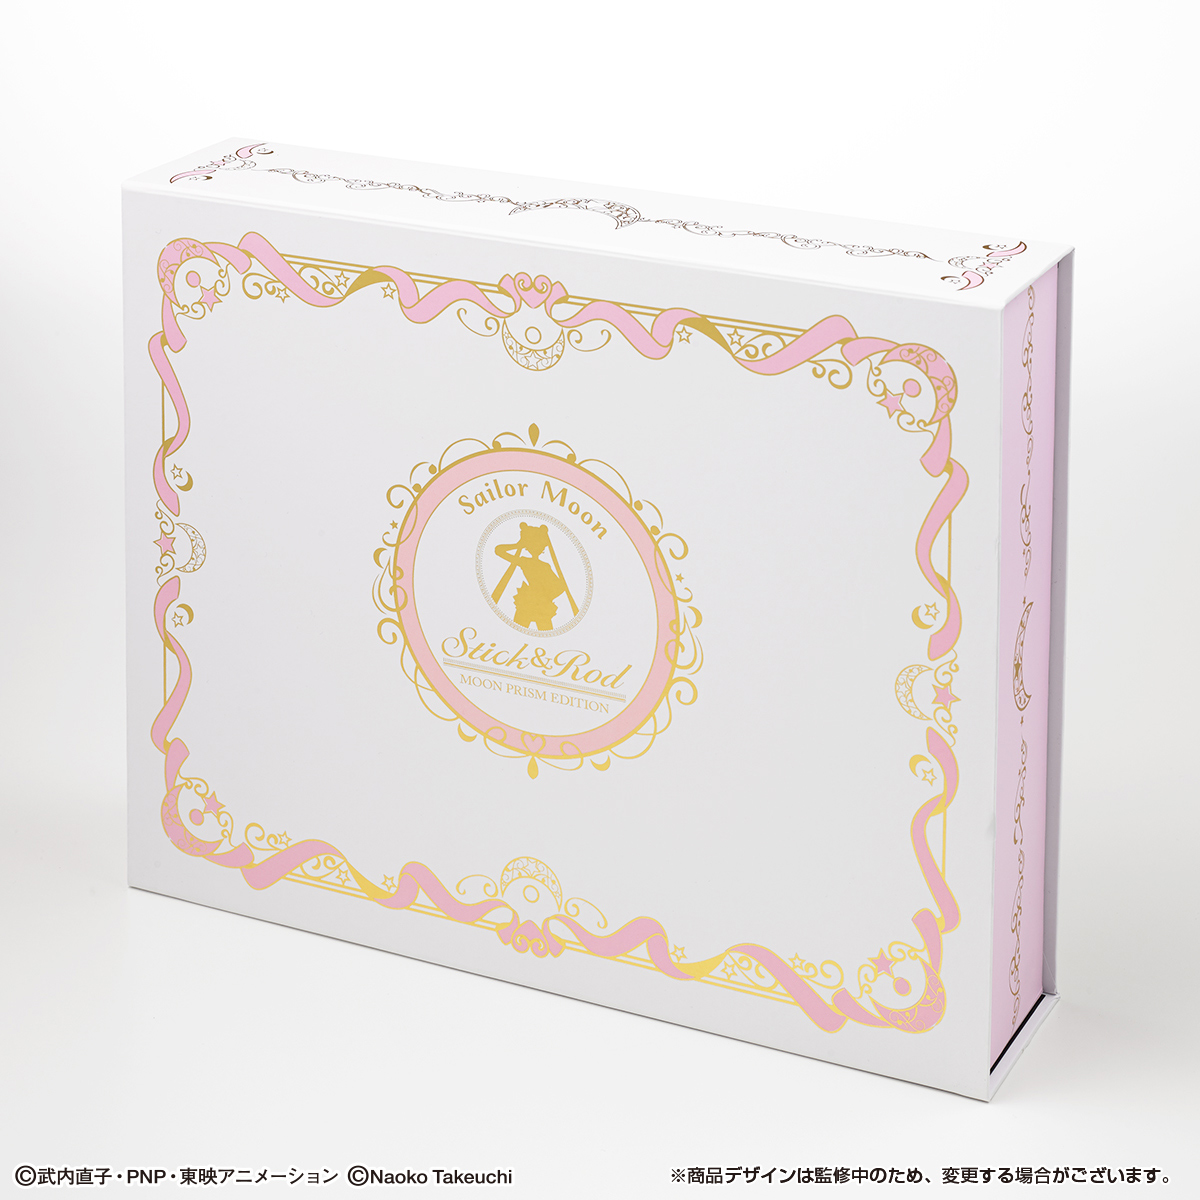 """sailor moon"" ""sailor moon merchandise"" ""sailor moon toys"" ""sailor moon wand"" ""sailor moon gashapon"" ""sailor moon fan club"" ""moon stick"" ""cutie moon rod"" ""eternal tiare"" ""spiral heart moon rod"" ""kaleidomoon scope"" box set anime japan 2017 ""sailor moon collectibles"""